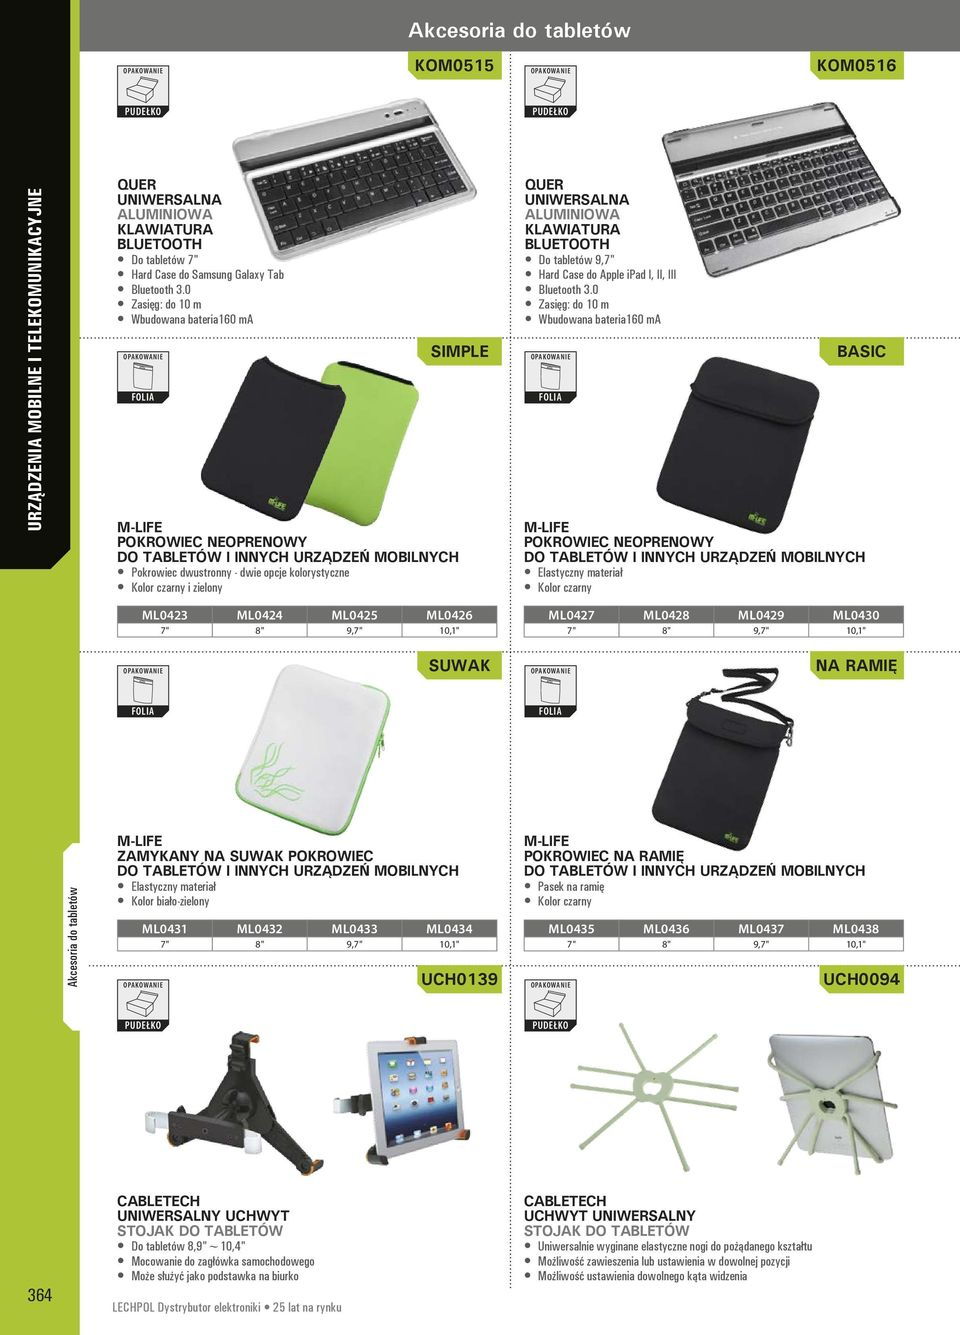 "UNIWERSALNA ALUMINIOWA KLAWIATURA BLUETOOTH Do tabletów 9,7"" Hard Case do Apple ipad I, II, III Bluetooth 3."